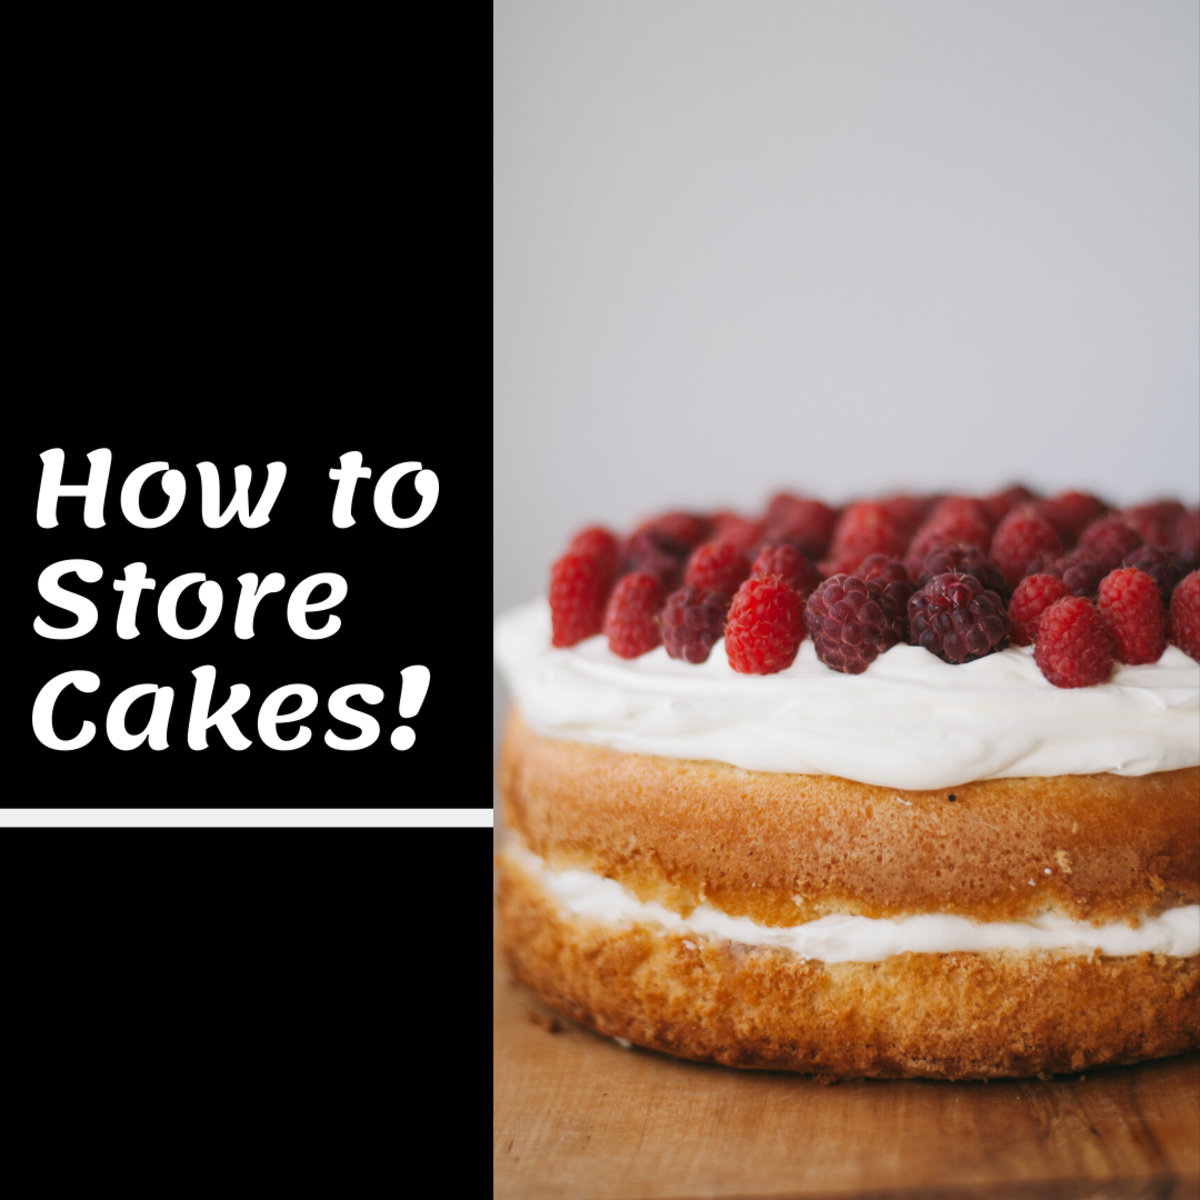 How to Store Cakes—Advice from a Pro